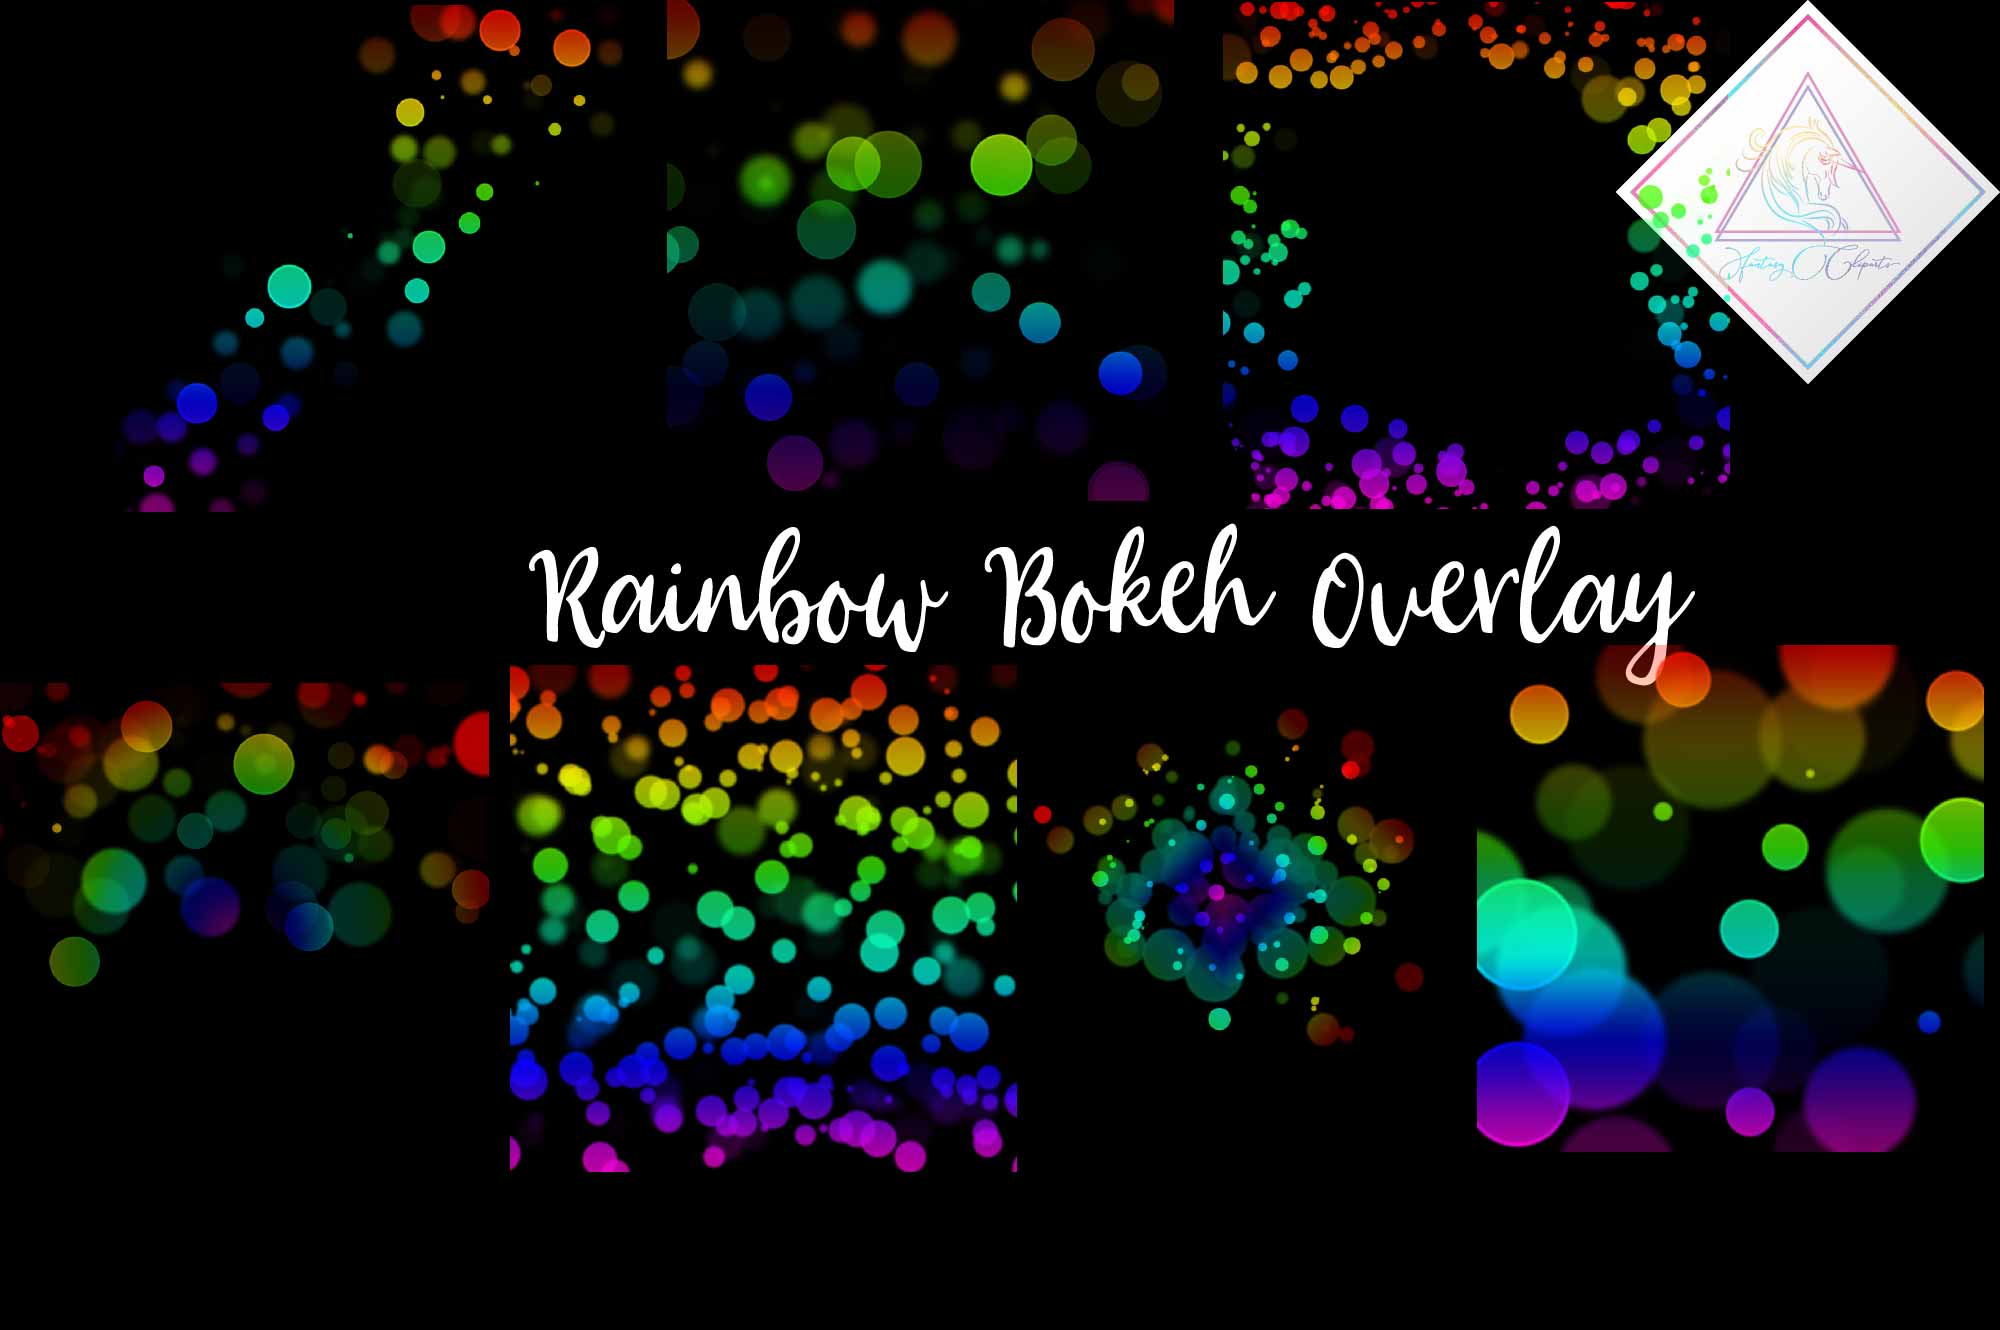 Download Free Rainbow Bokeh Clipart Overlay Graphic By Fantasycliparts for Cricut Explore, Silhouette and other cutting machines.